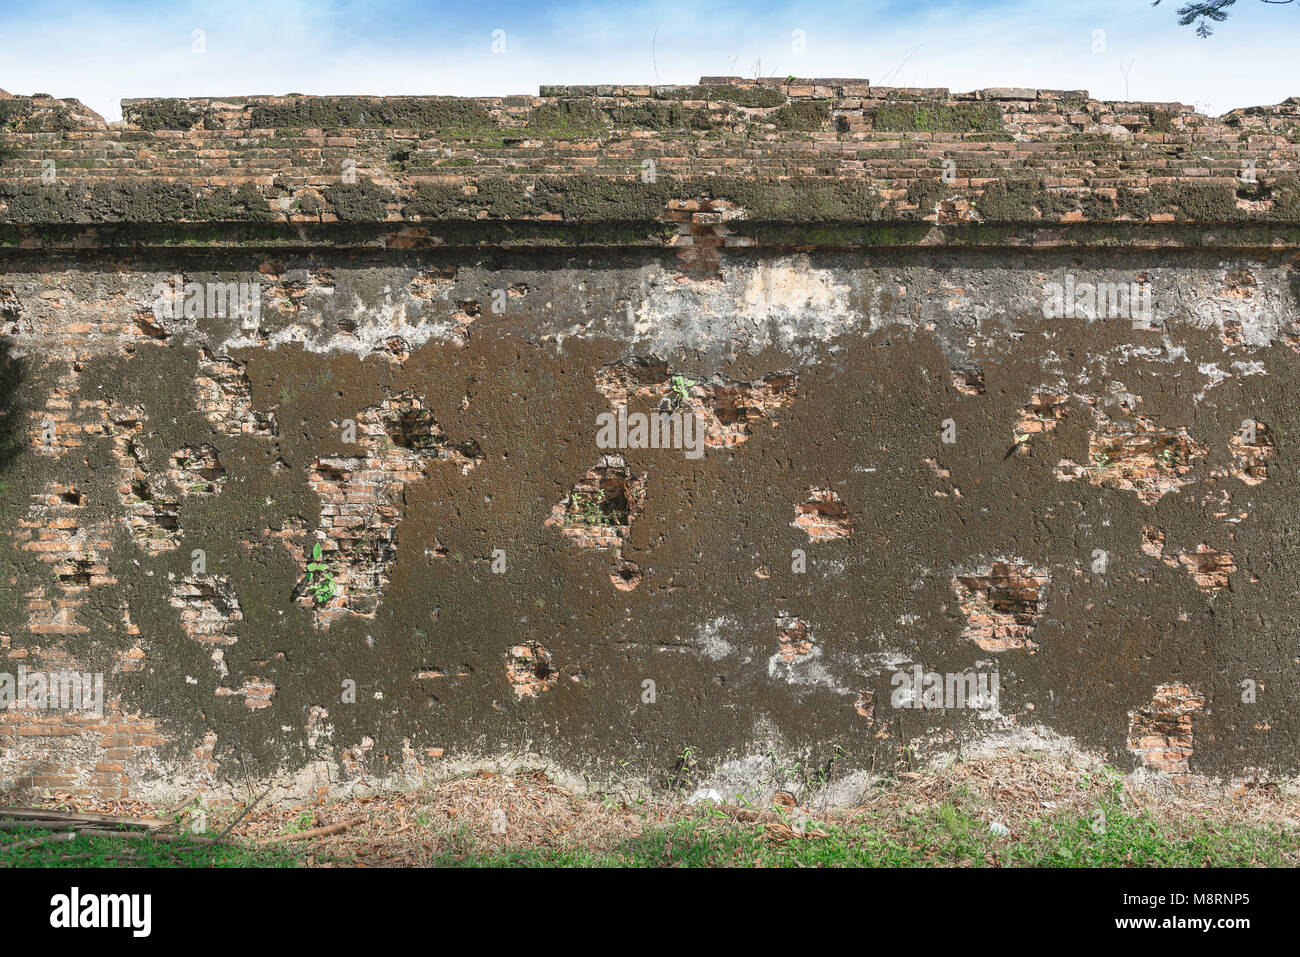 Section of the Citadel wall in Hue still bearing damage and bullet holes from the fierce fighting around the Imperial - Stock Image